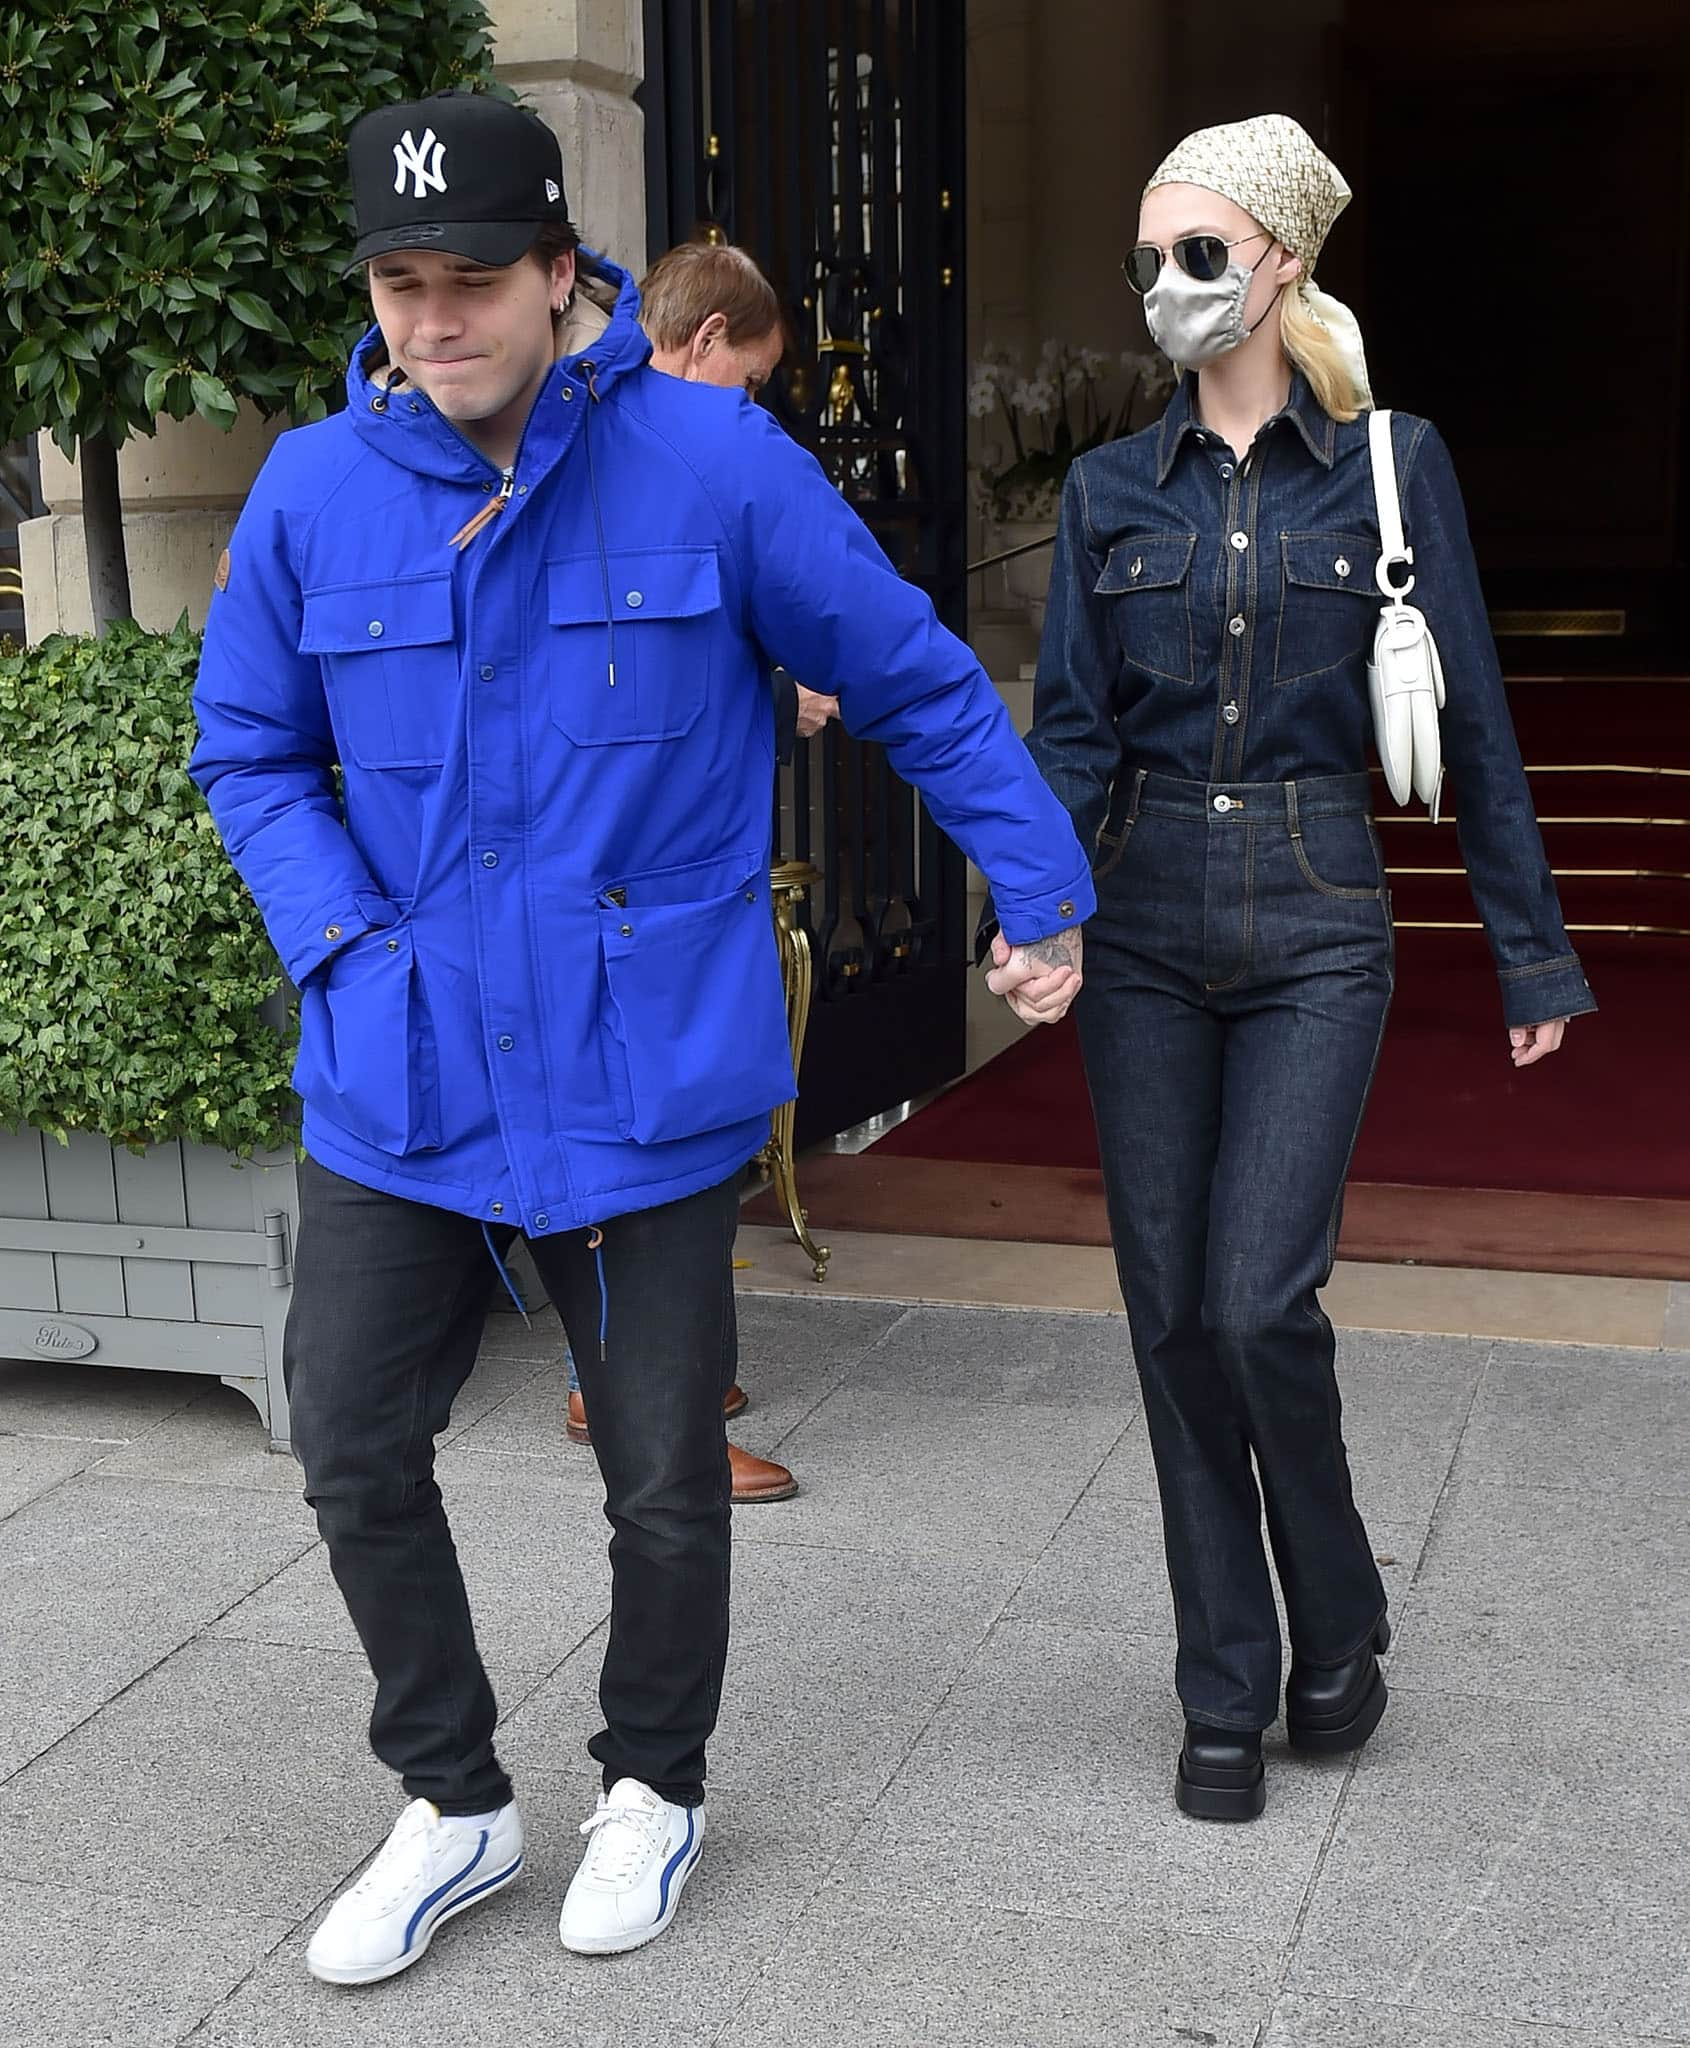 Brooklyn Beckham bundles up in a blue jacket while Nicola Peltz embraces the double denim trend as they head to a flea market